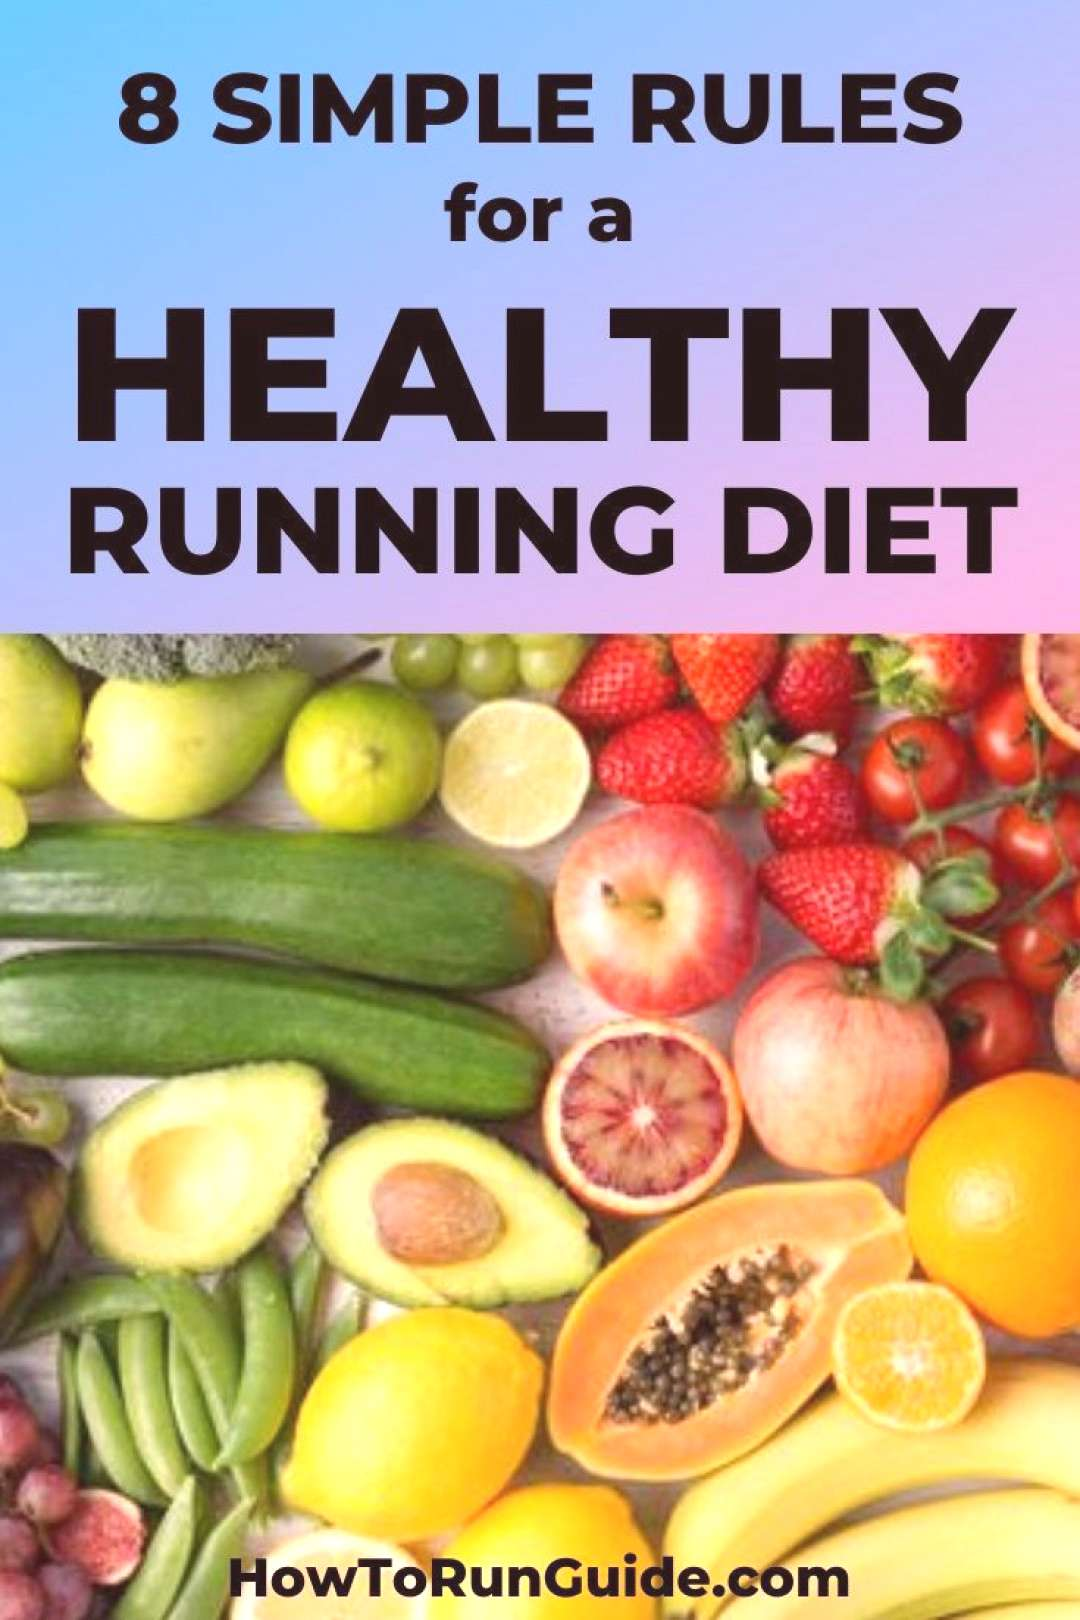 8 Simple Rules for a Healthy Running Diet [You Can Actually Stick To] You don't have to live on b